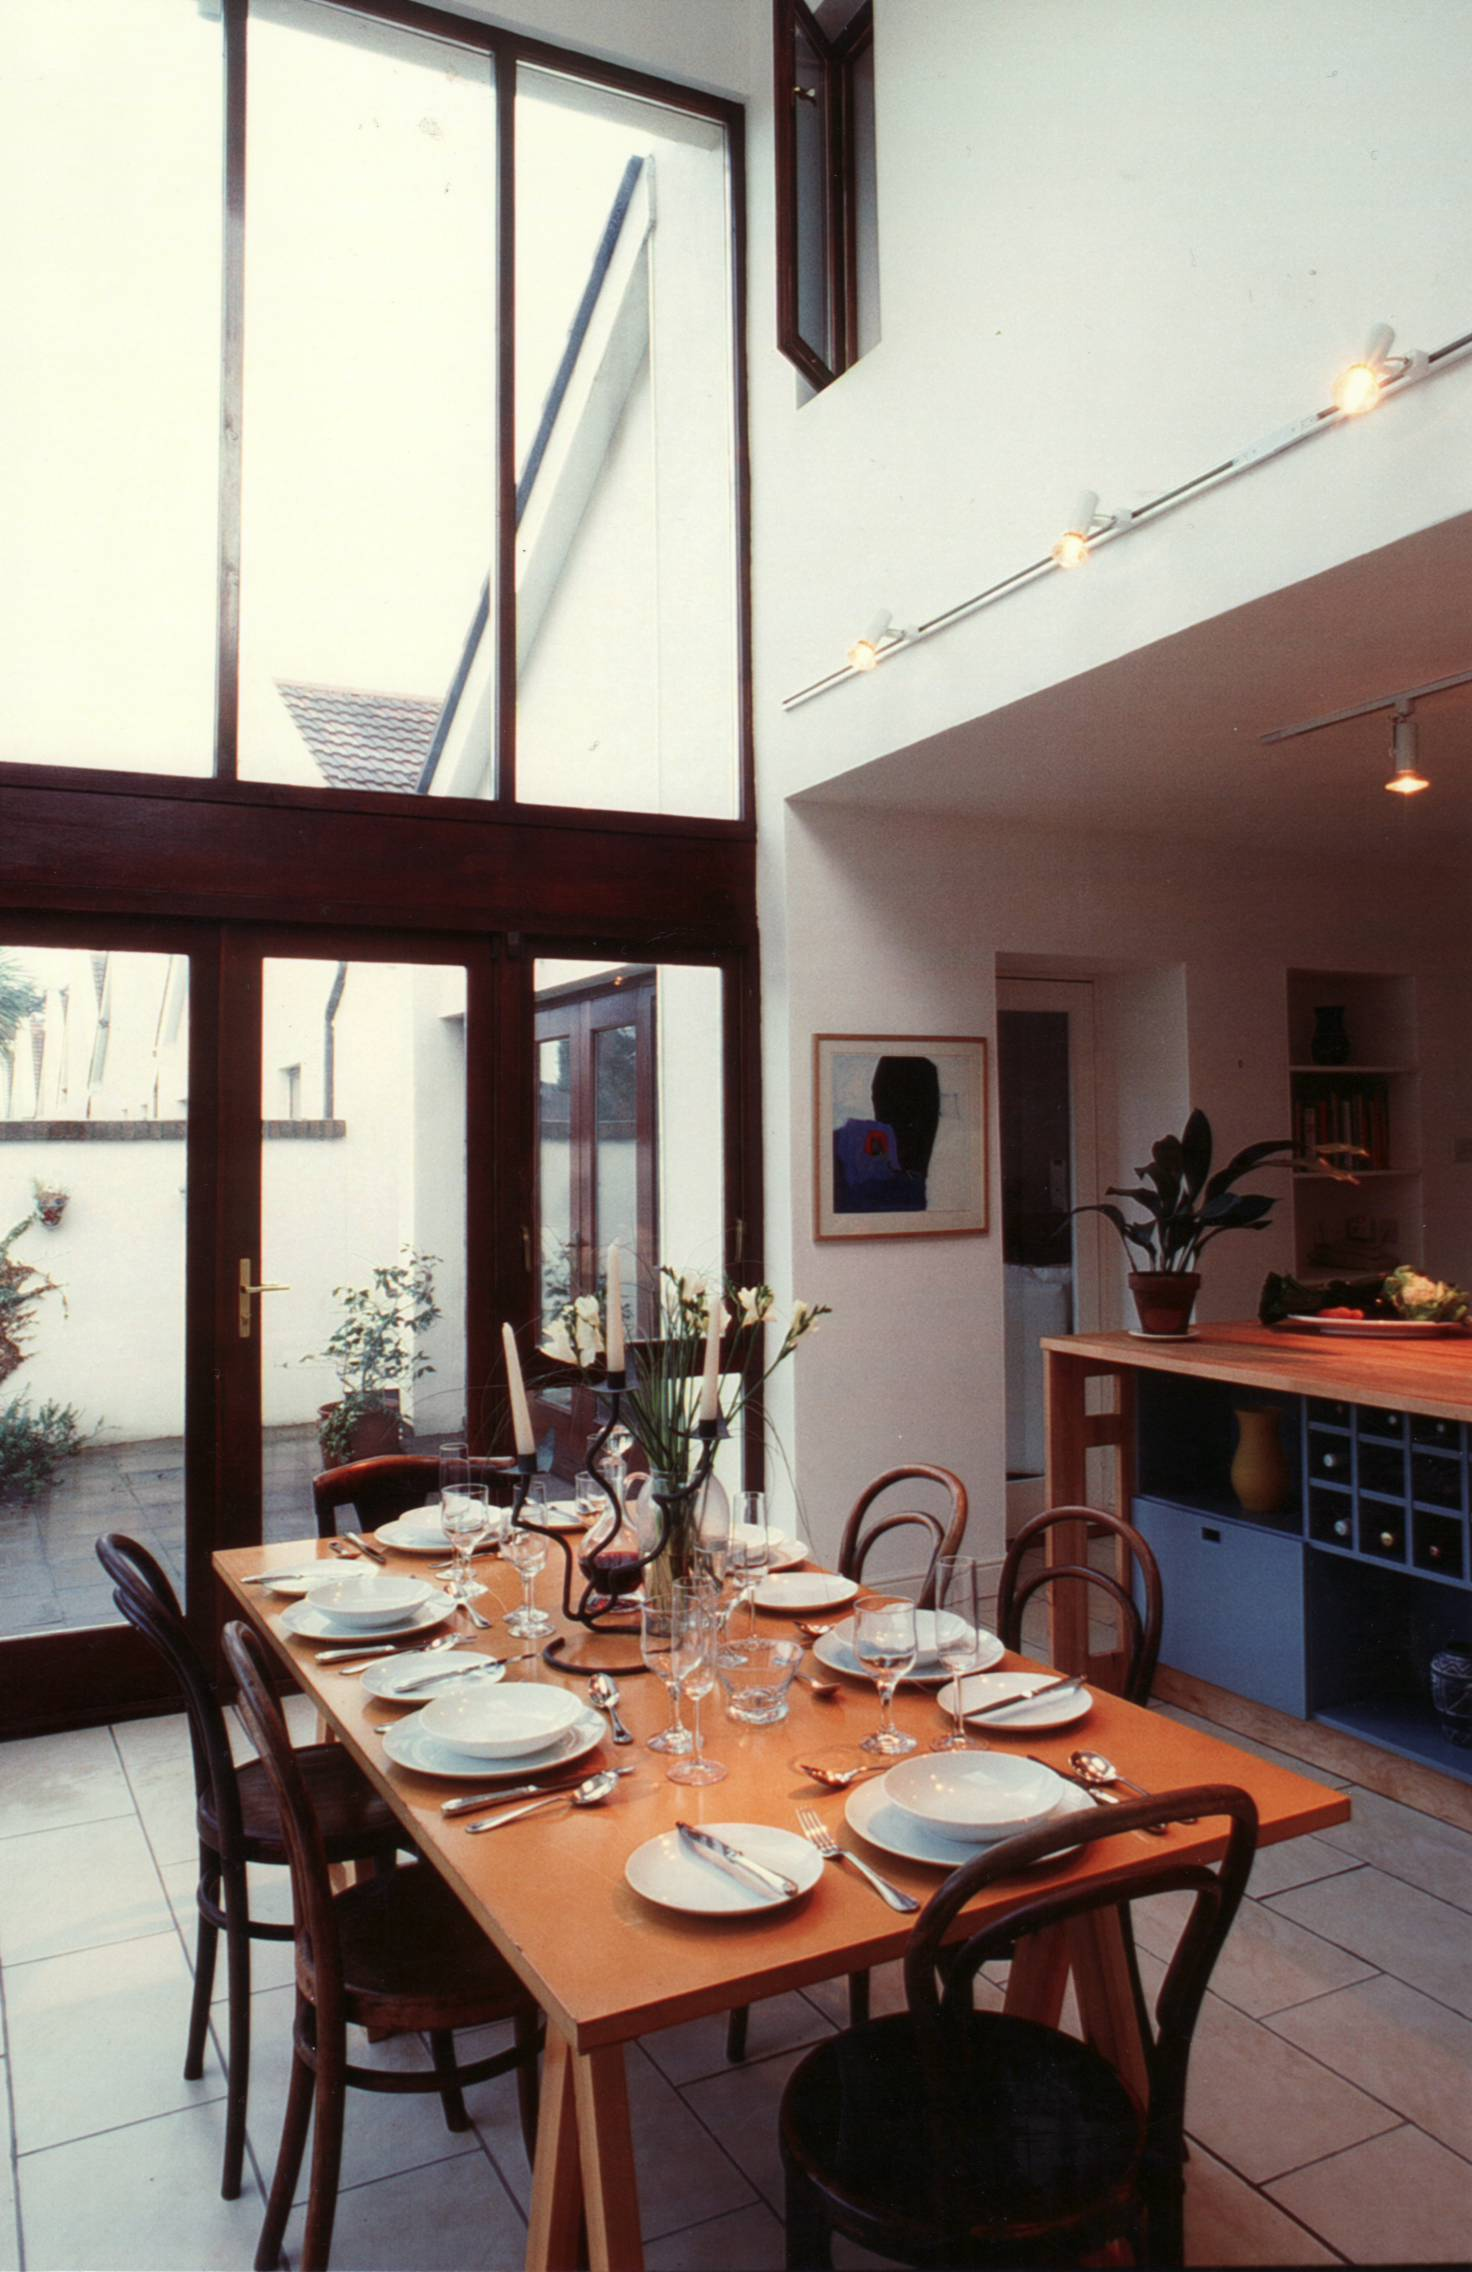 Space Design Ideas House Extension To Front Of Kitchen Dining Area Increasing In By Double Height